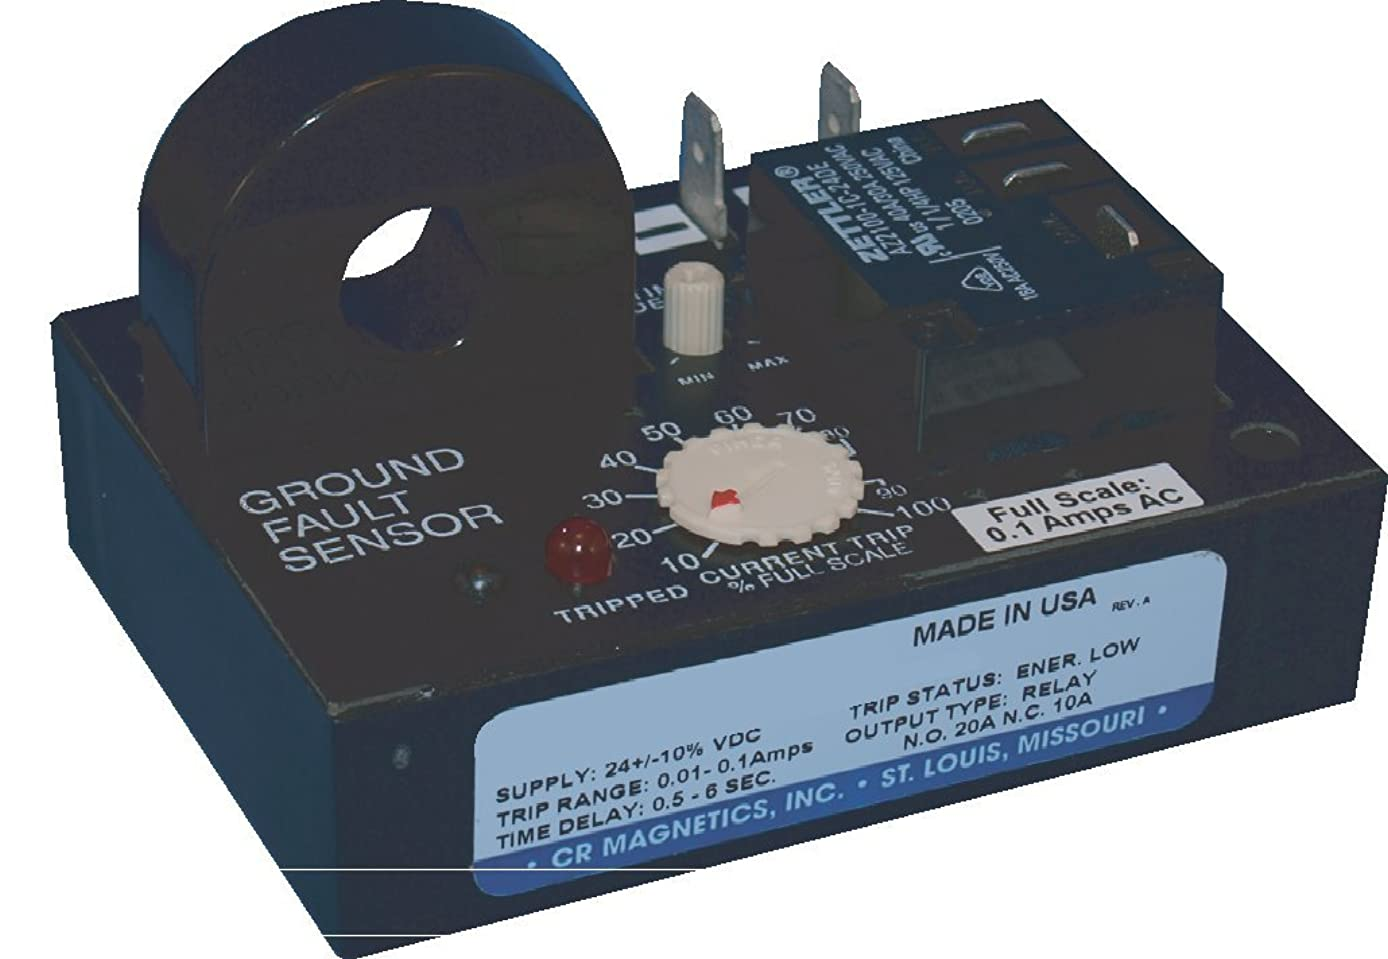 CR Magnetics CR7310-EL-24D-101-X-CD-NPN-R Ground Fault Sensor Relay with Optoisolated NPN Transistor and Remote Transformer, 24 VDC, Energized on Low Trip, 10 to 100 AAC Trip Range